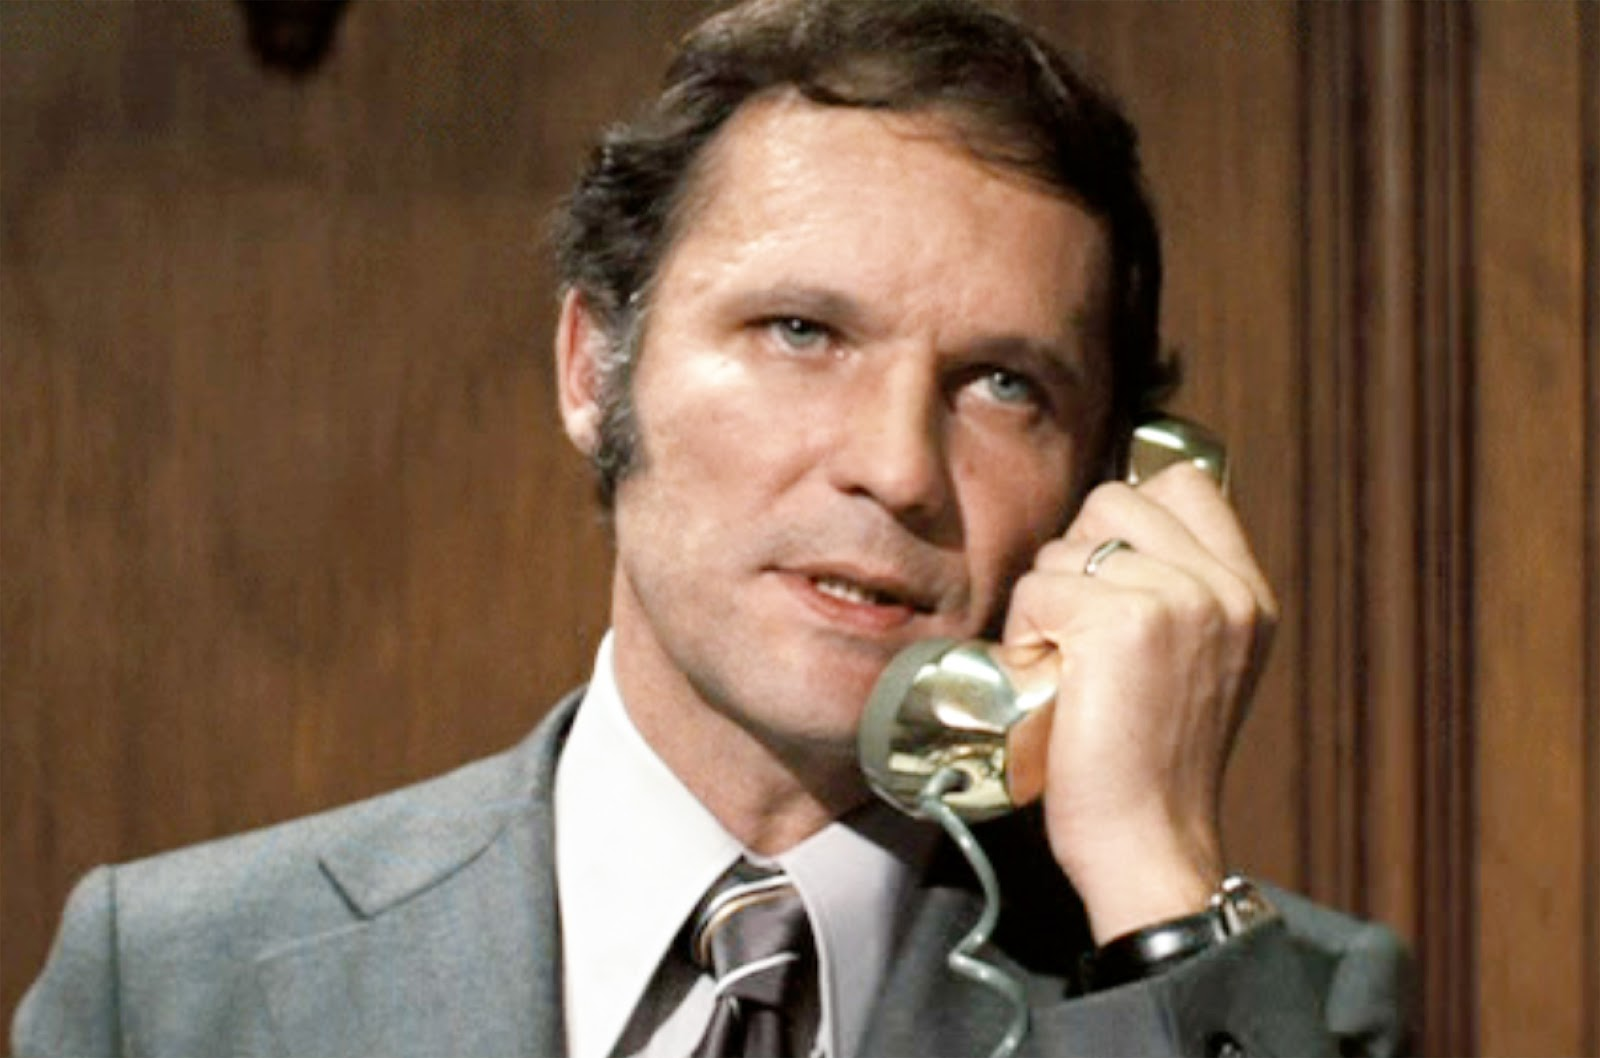 SIR EDWIN FLUFFER'S HOLLYWOOD SUPERSTARS: 1. JOHN VERNON